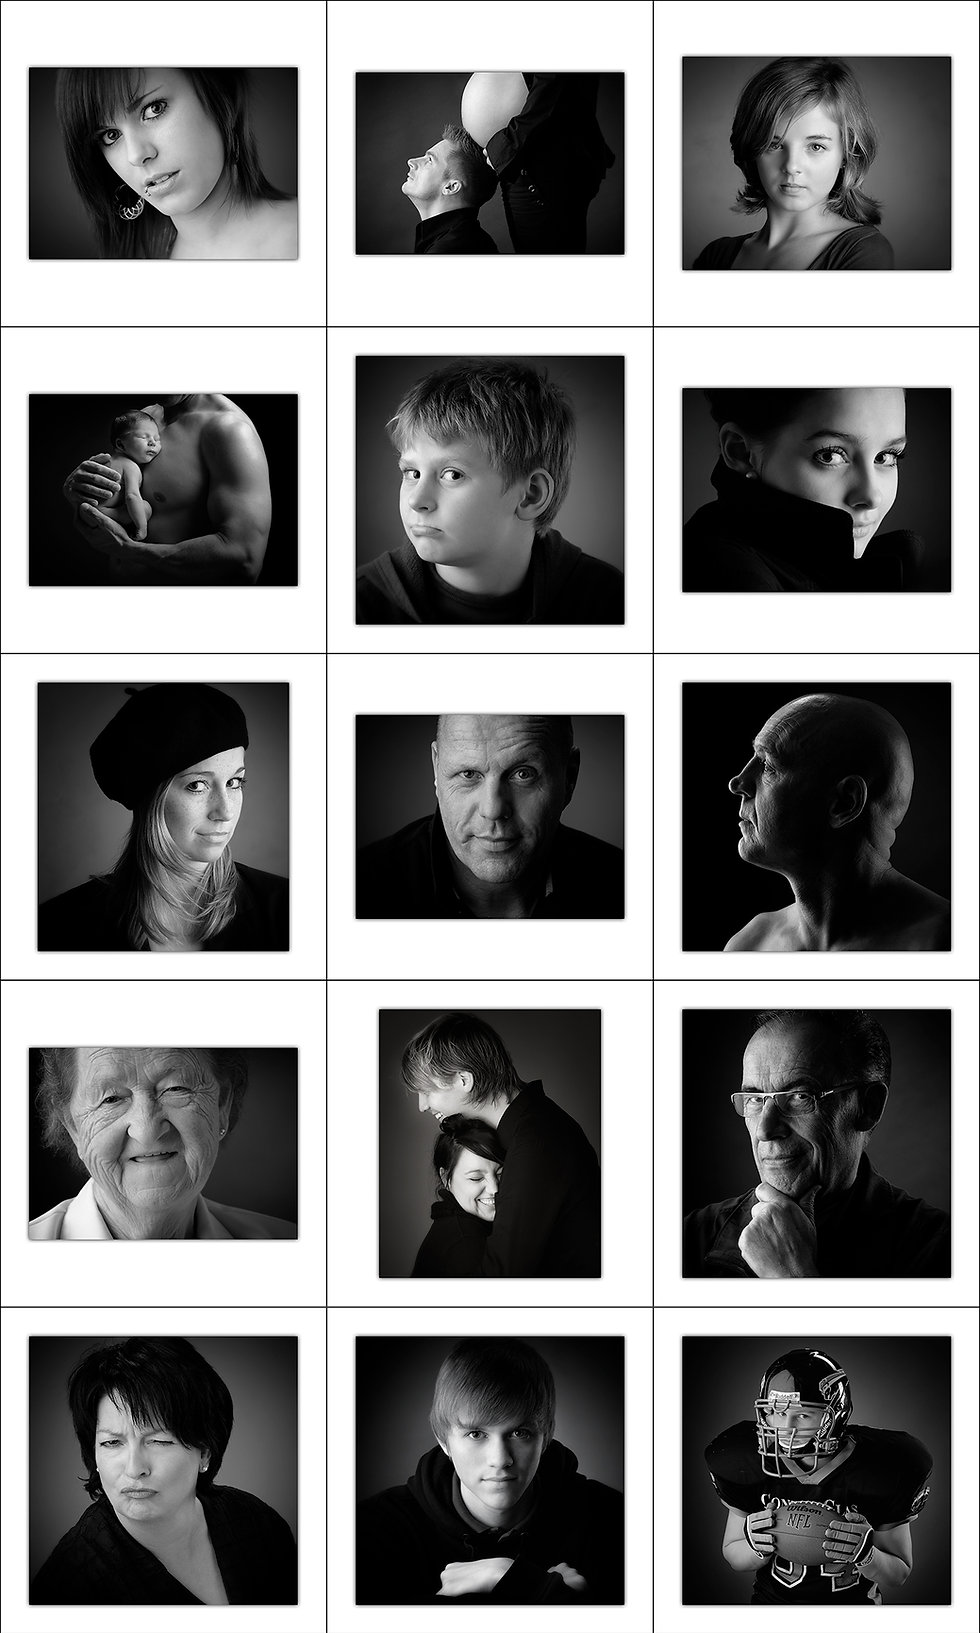 People, black & white, International Photographic Qualifications, International Photographer of High Quality